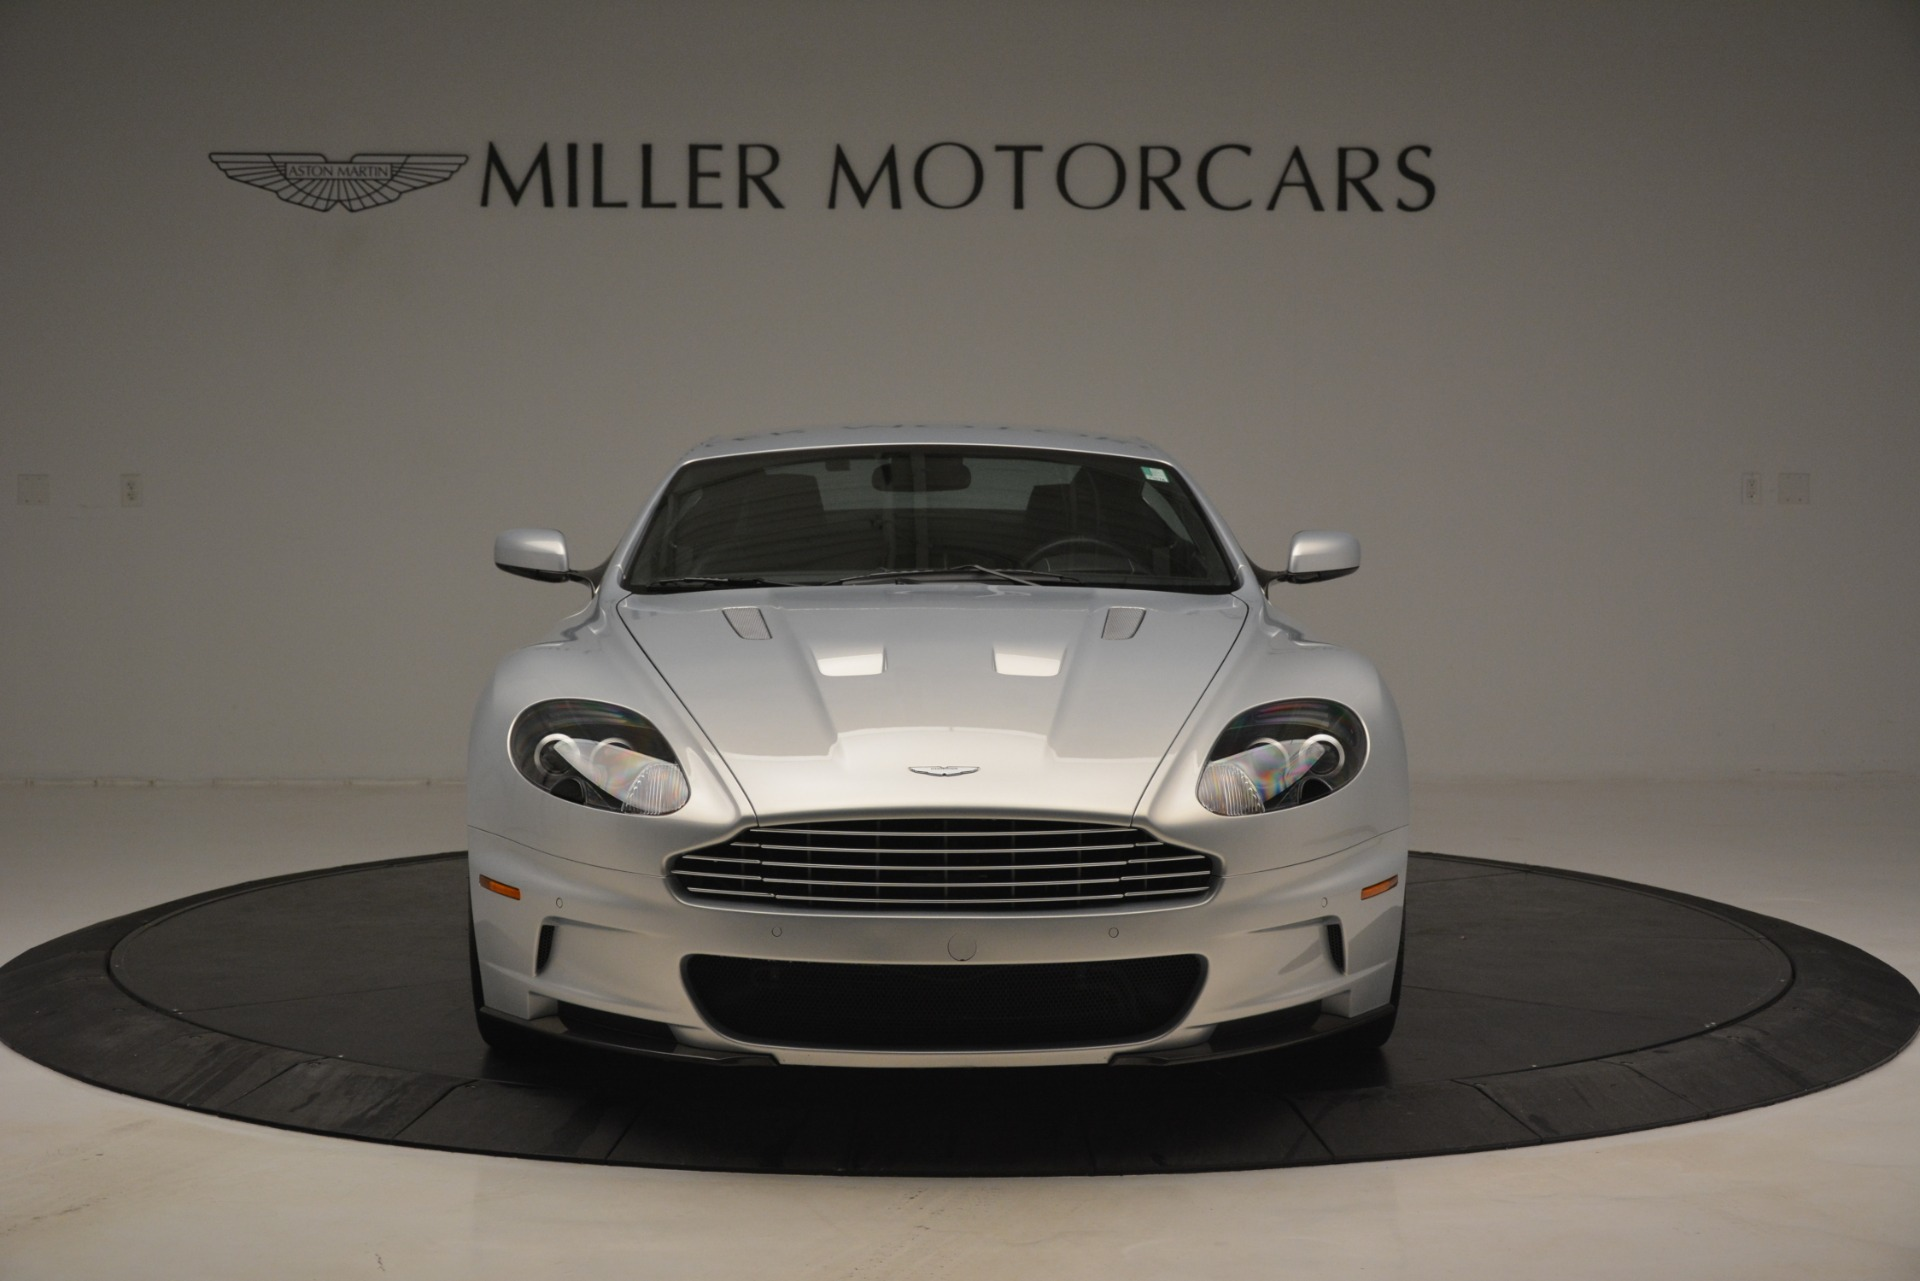 Used 2009 Aston Martin DBS Coupe For Sale In Greenwich, CT 3033_p12